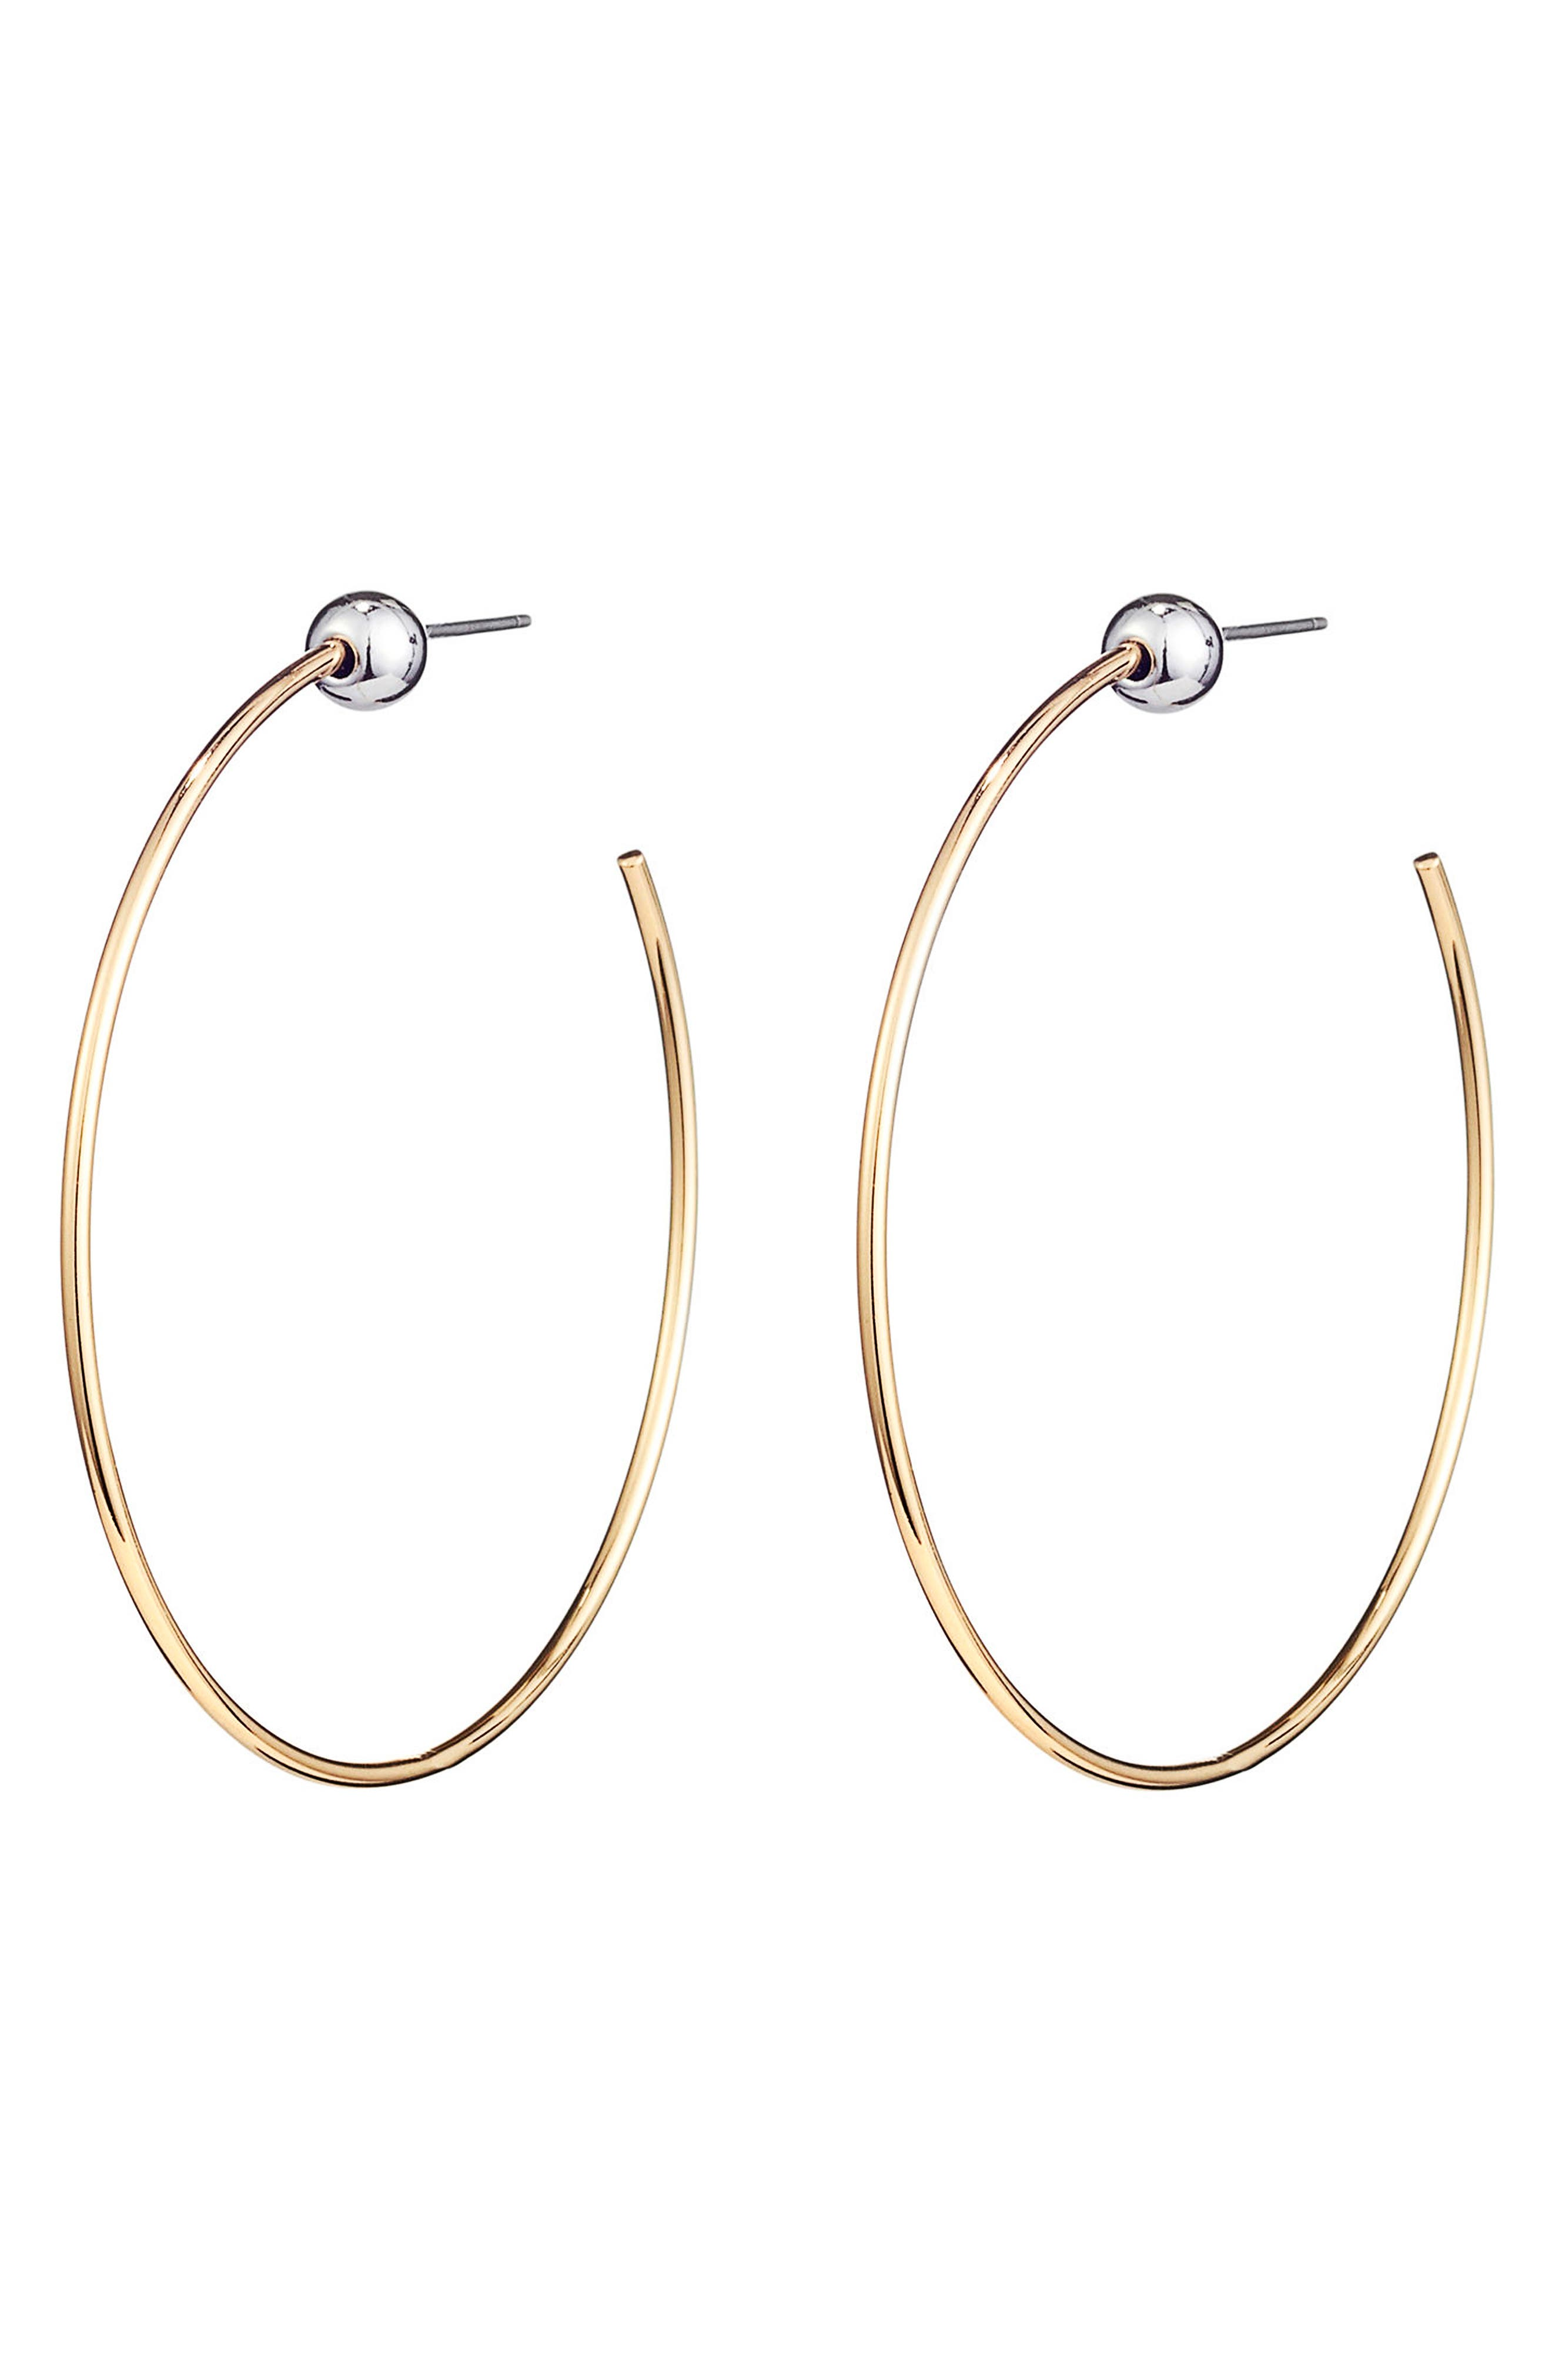 Icon Small Hoop Earrings,                             Alternate thumbnail 3, color,                             Gold/ Silver